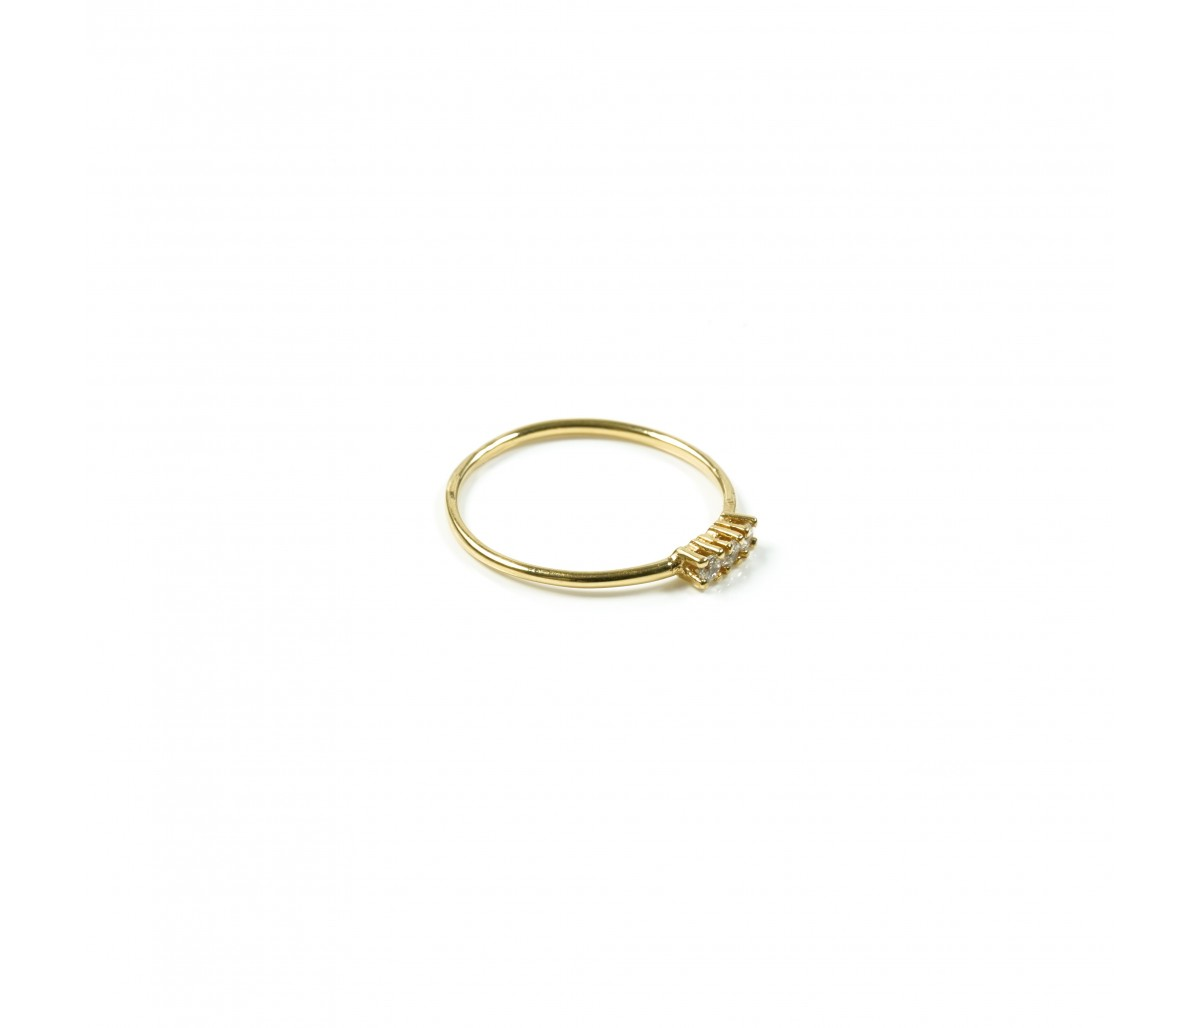 Charly 19k gold ring